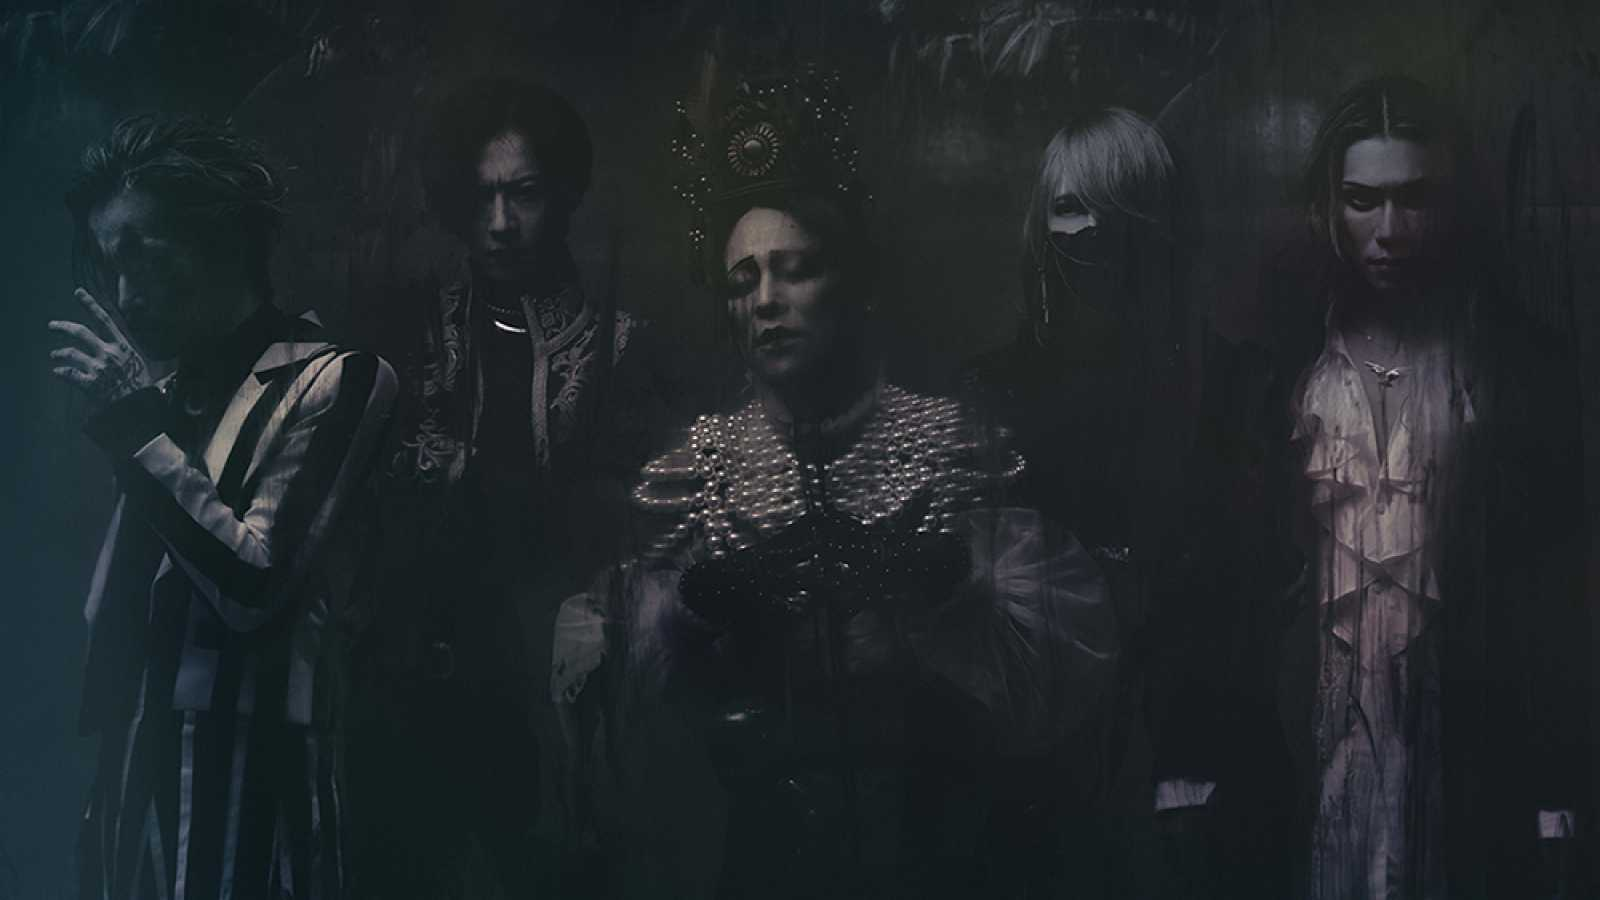 Nuevo single digital de DIR EN GREY © sun-krad Co., Ltd. All rights reserved.